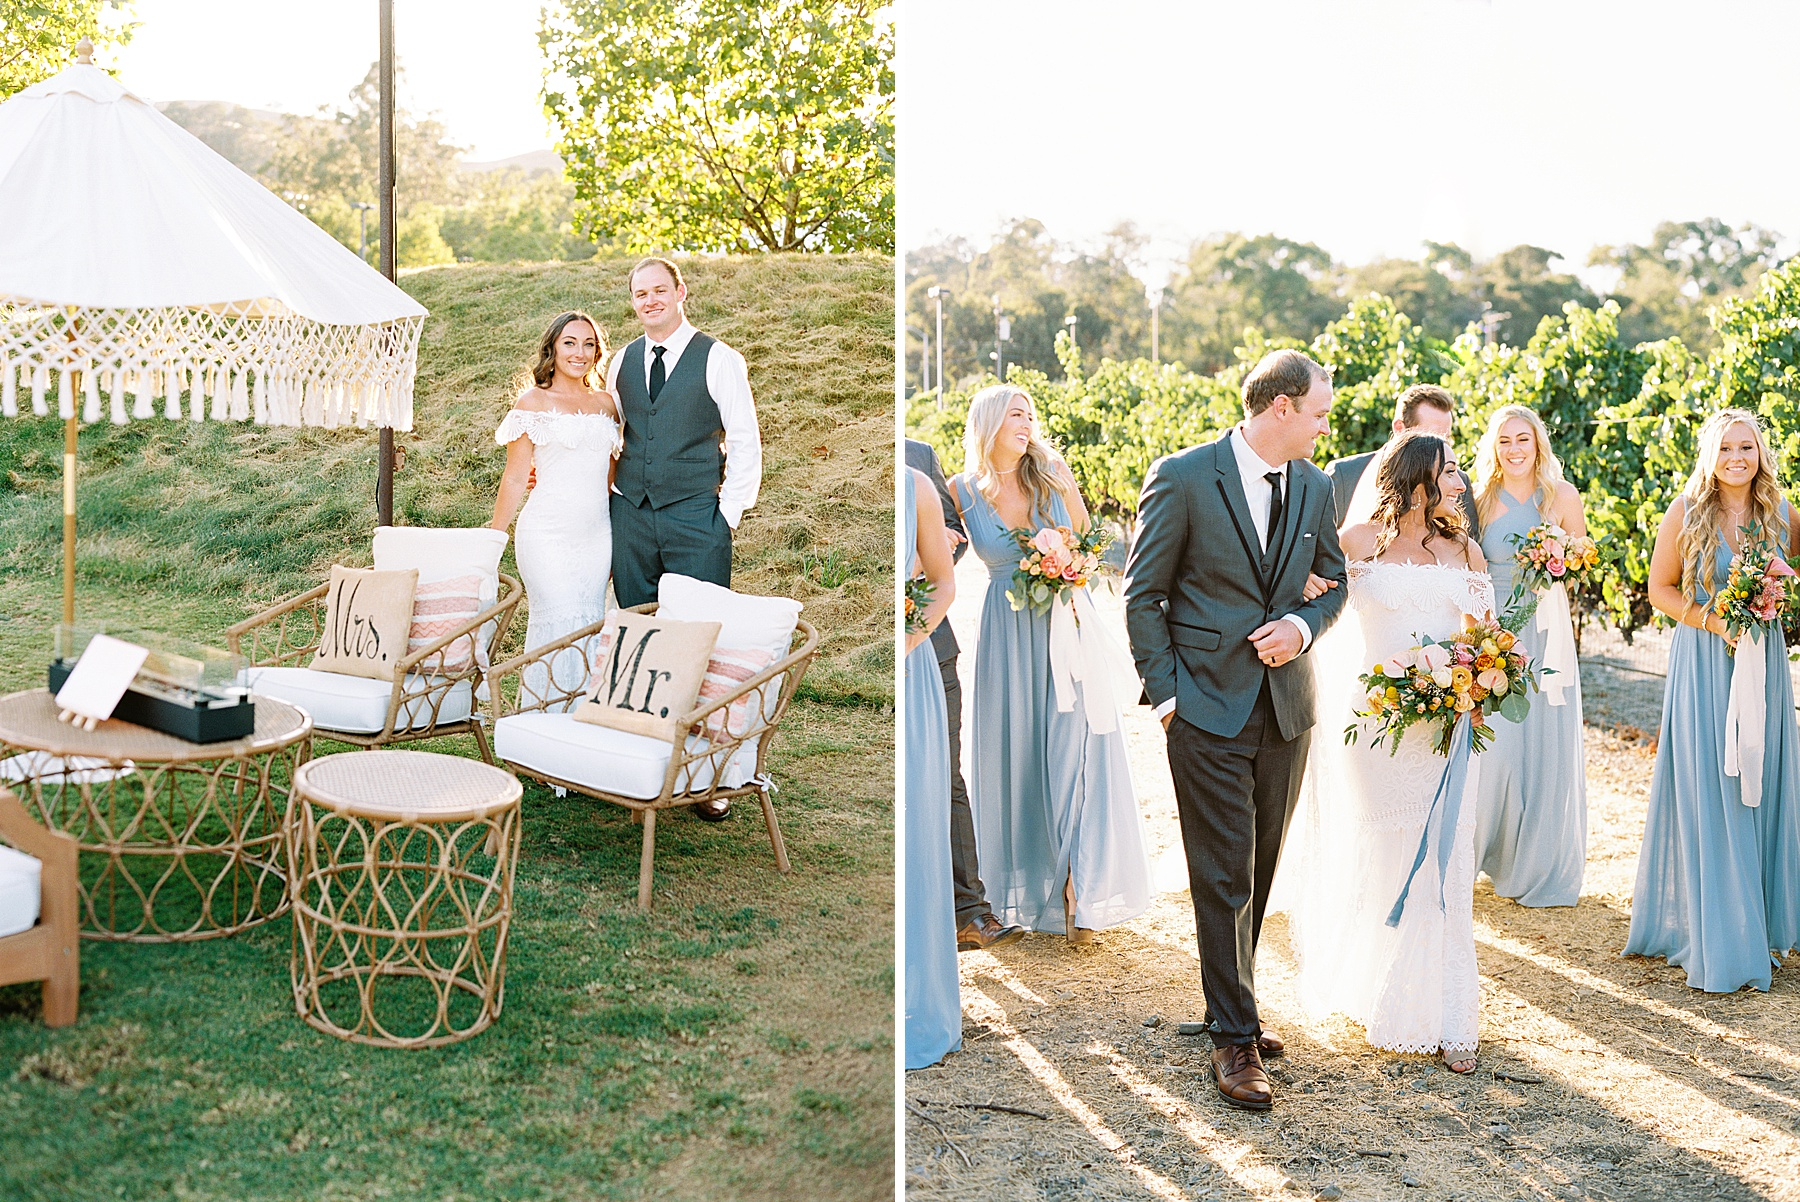 Wente Wedding with A Tropical Color Palette - Ashley & Mike - Featured on Inspired by This - Ashley Baumgartner_0039.jpg